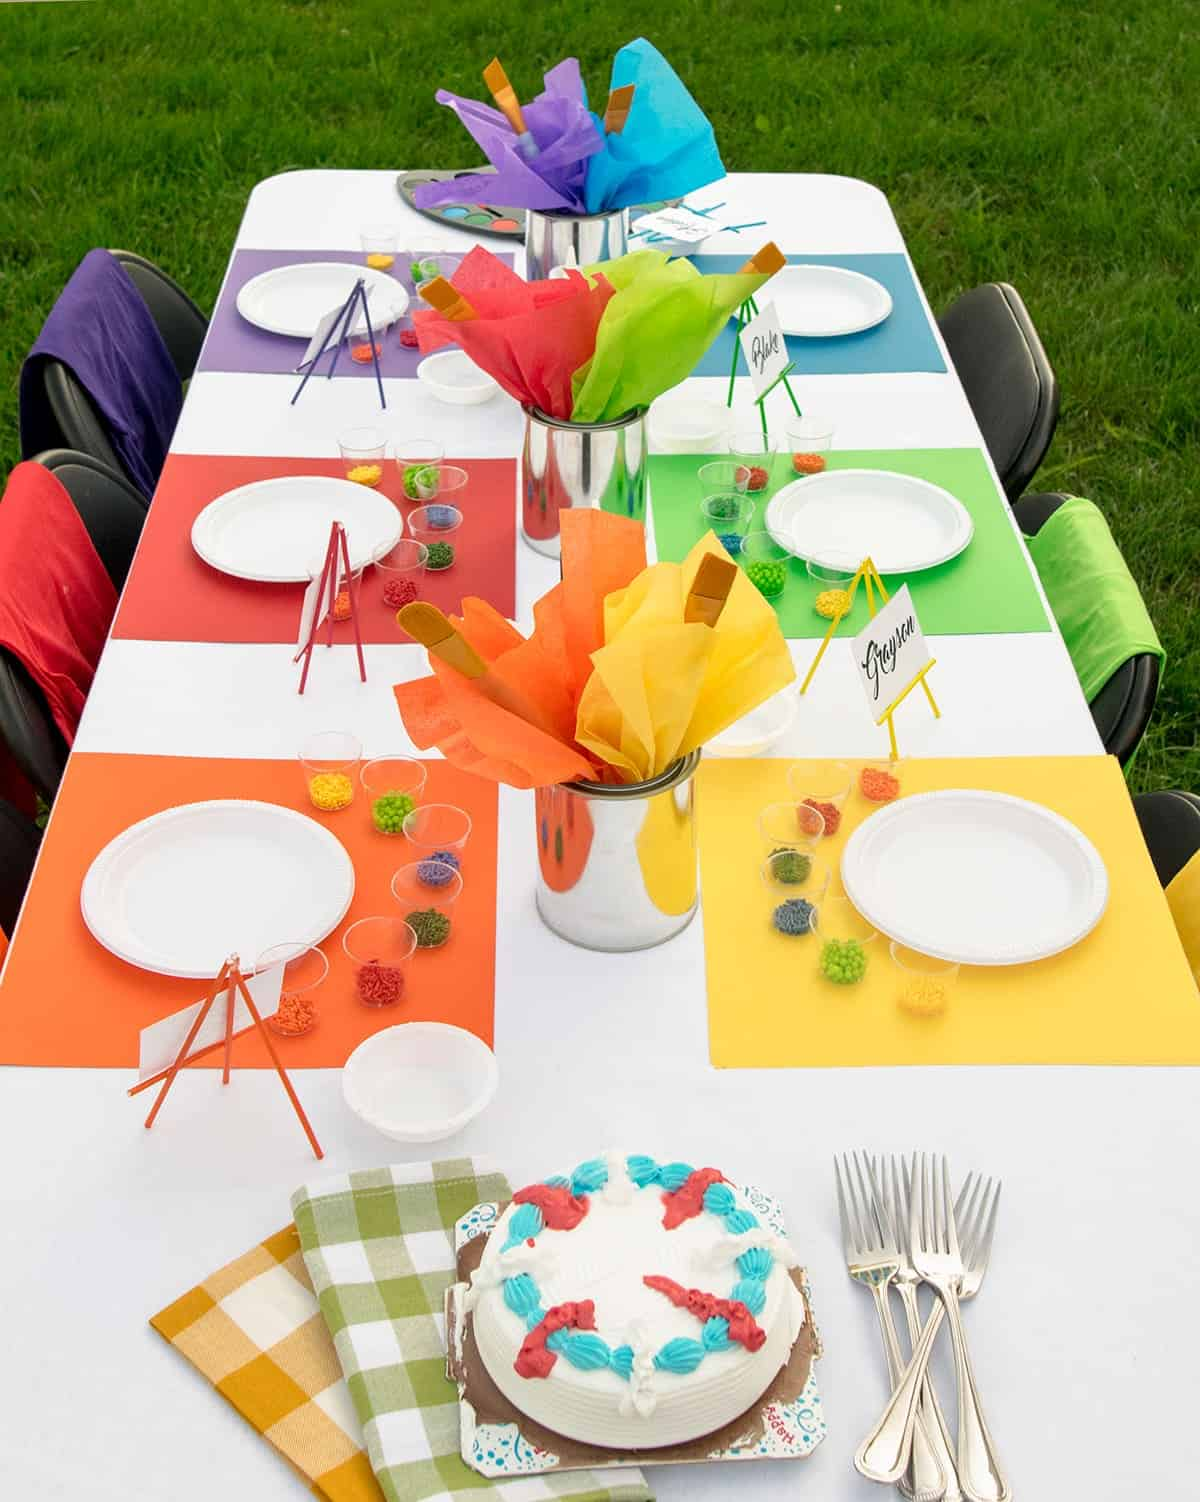 Rainbow outdoor table setting with individual place settings for cake decorating